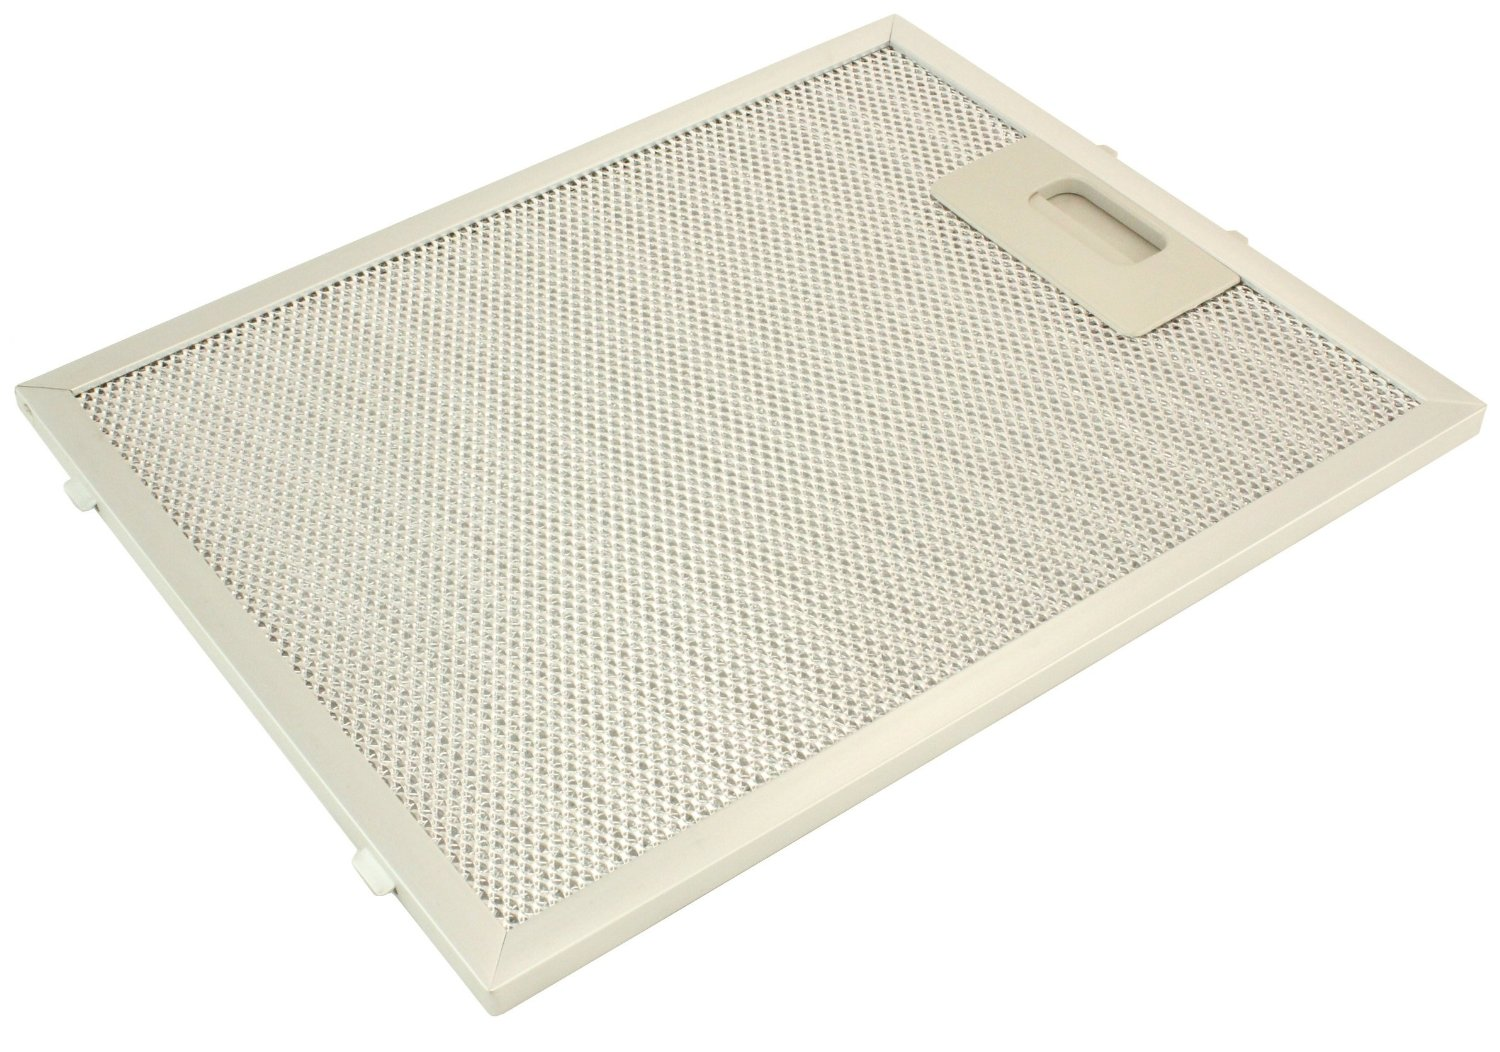 BAUMATIC HYGENA DIPLOMAT COOKER HOOD FILTER 08087609 GENUINE 300